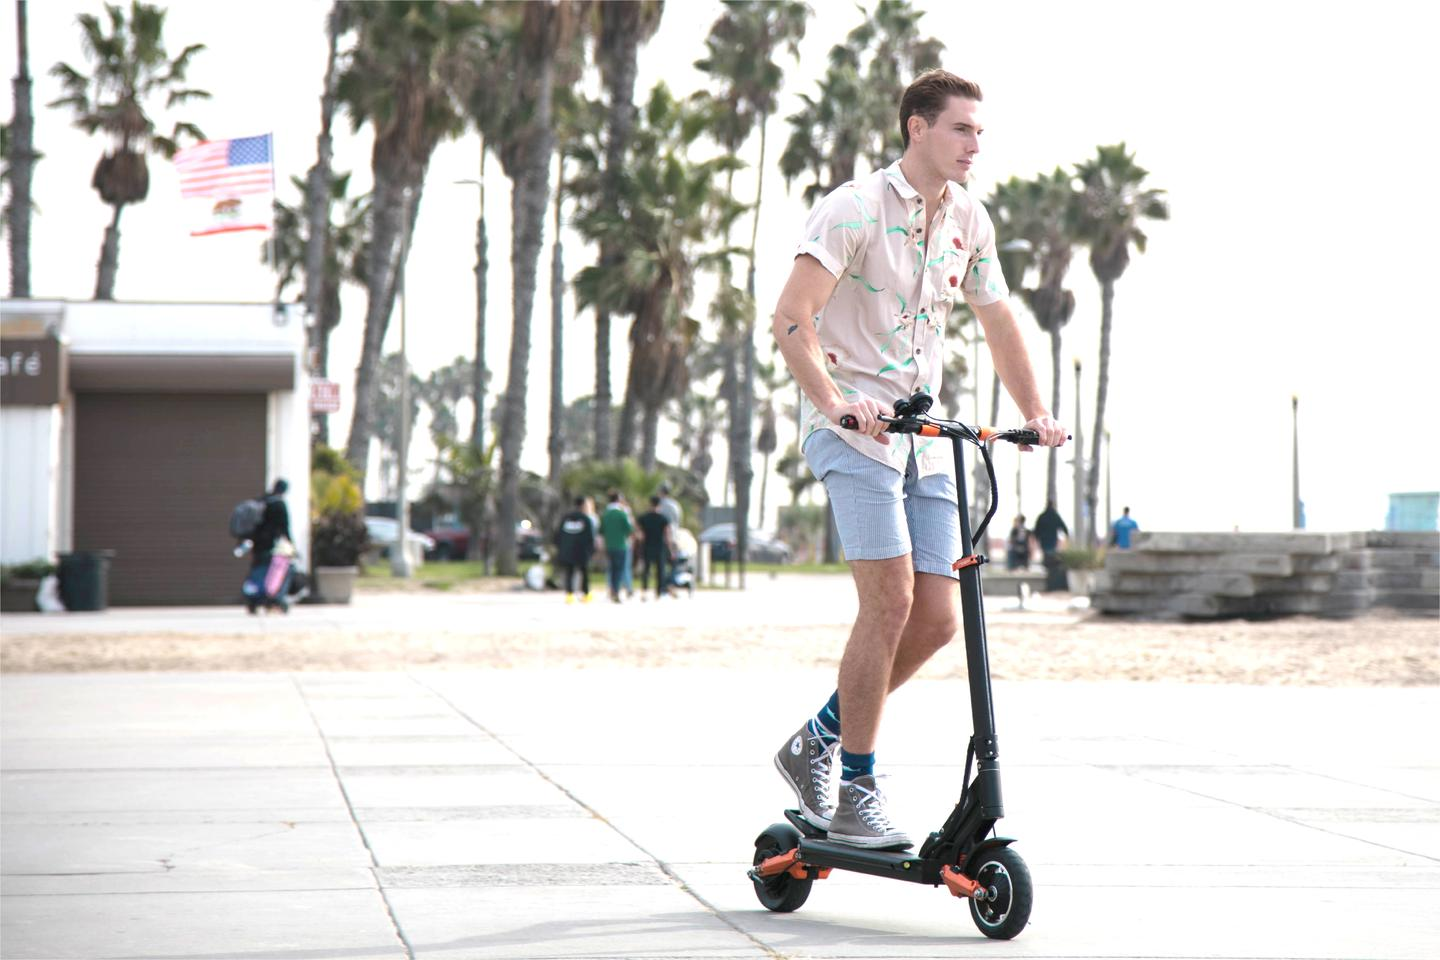 The Splach e-scooter is presently on Indiegogo